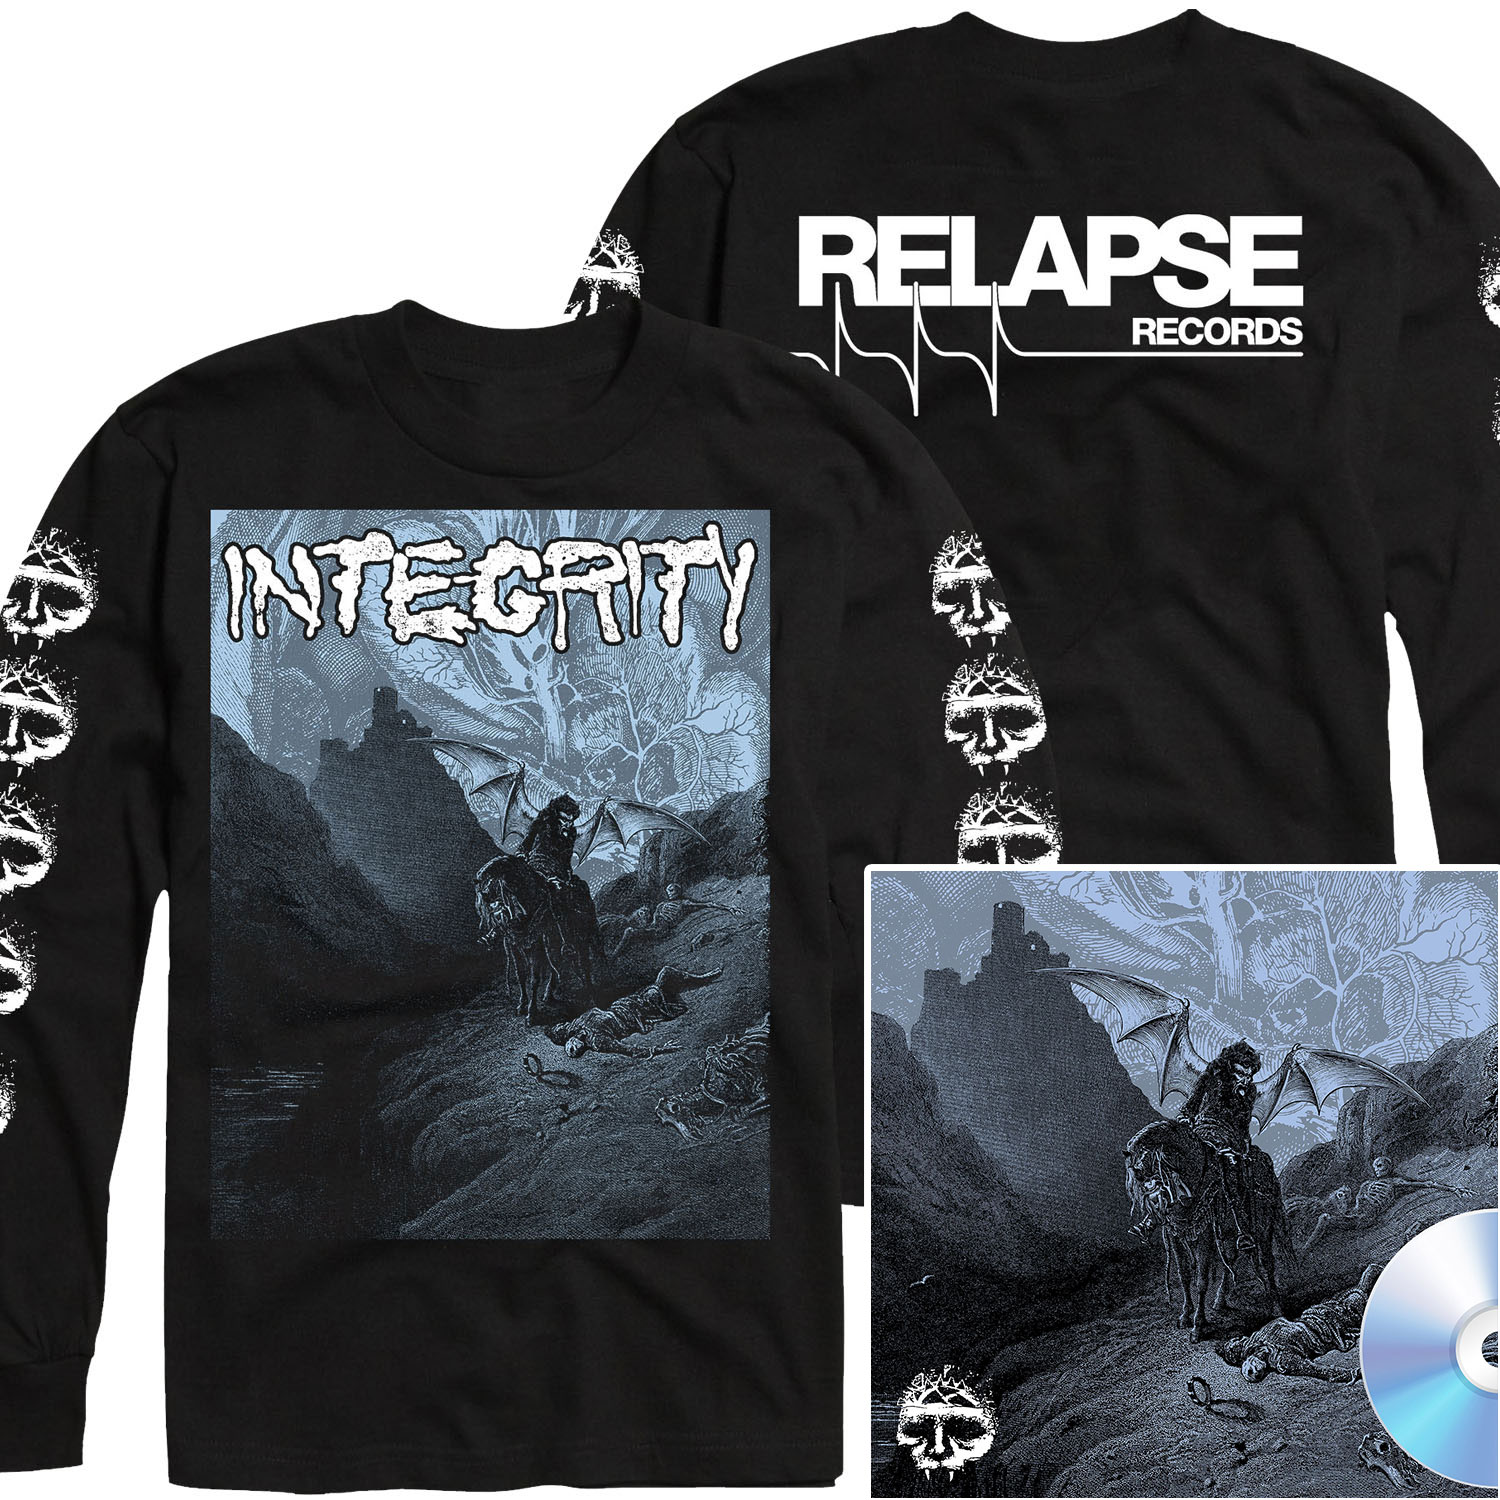 Howling, For The Nightmare Shall Consume Long Sleeve Shirt + CD Bundle